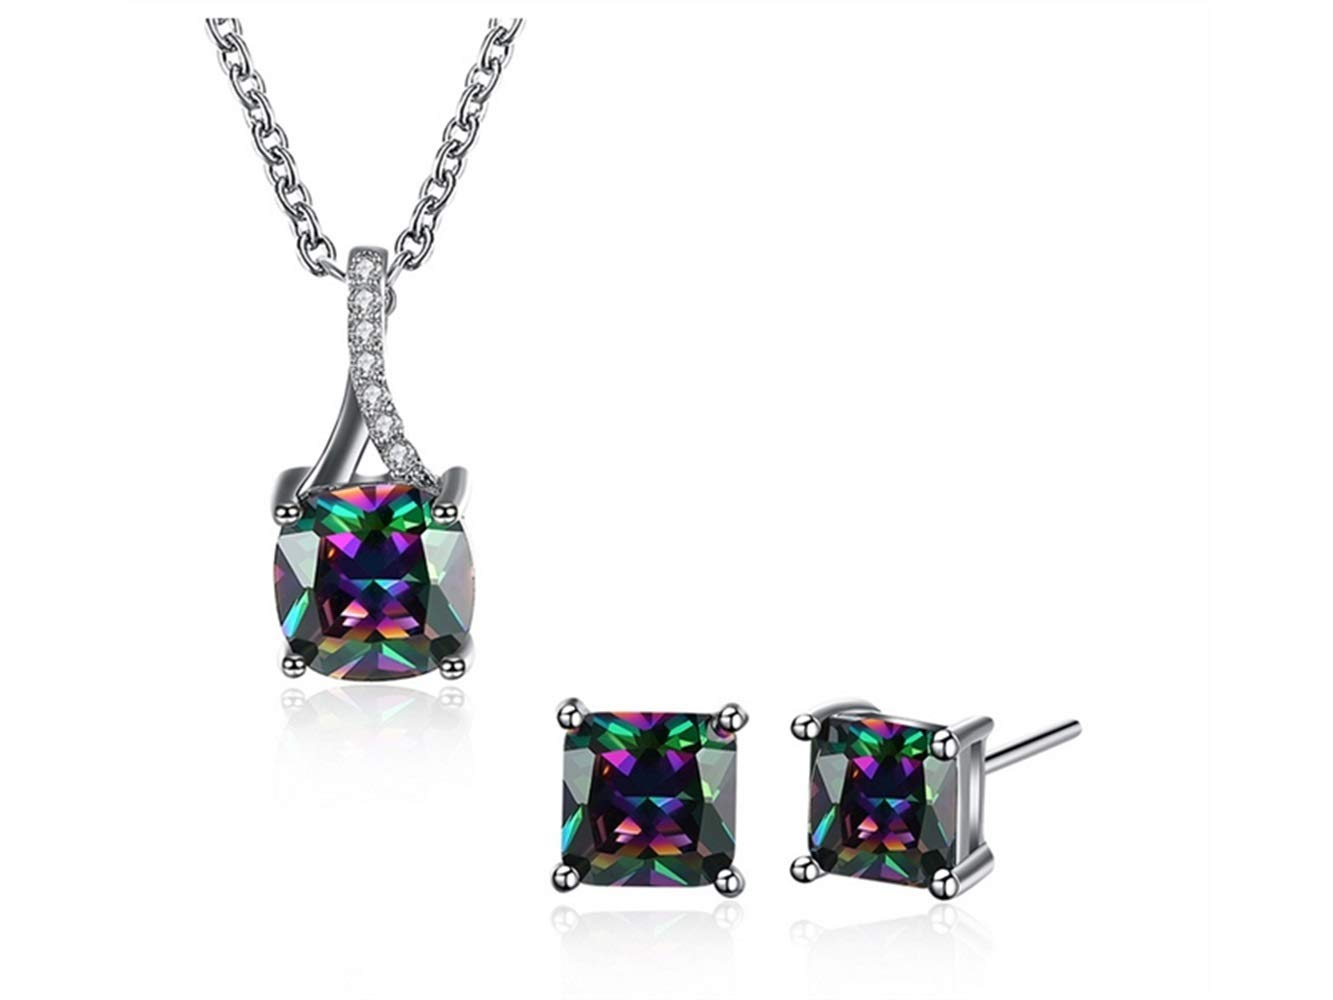 Yuchoi Girl Jewelry Fashion Square Color Zircon Necklace Stud Earrings Decoration Suit